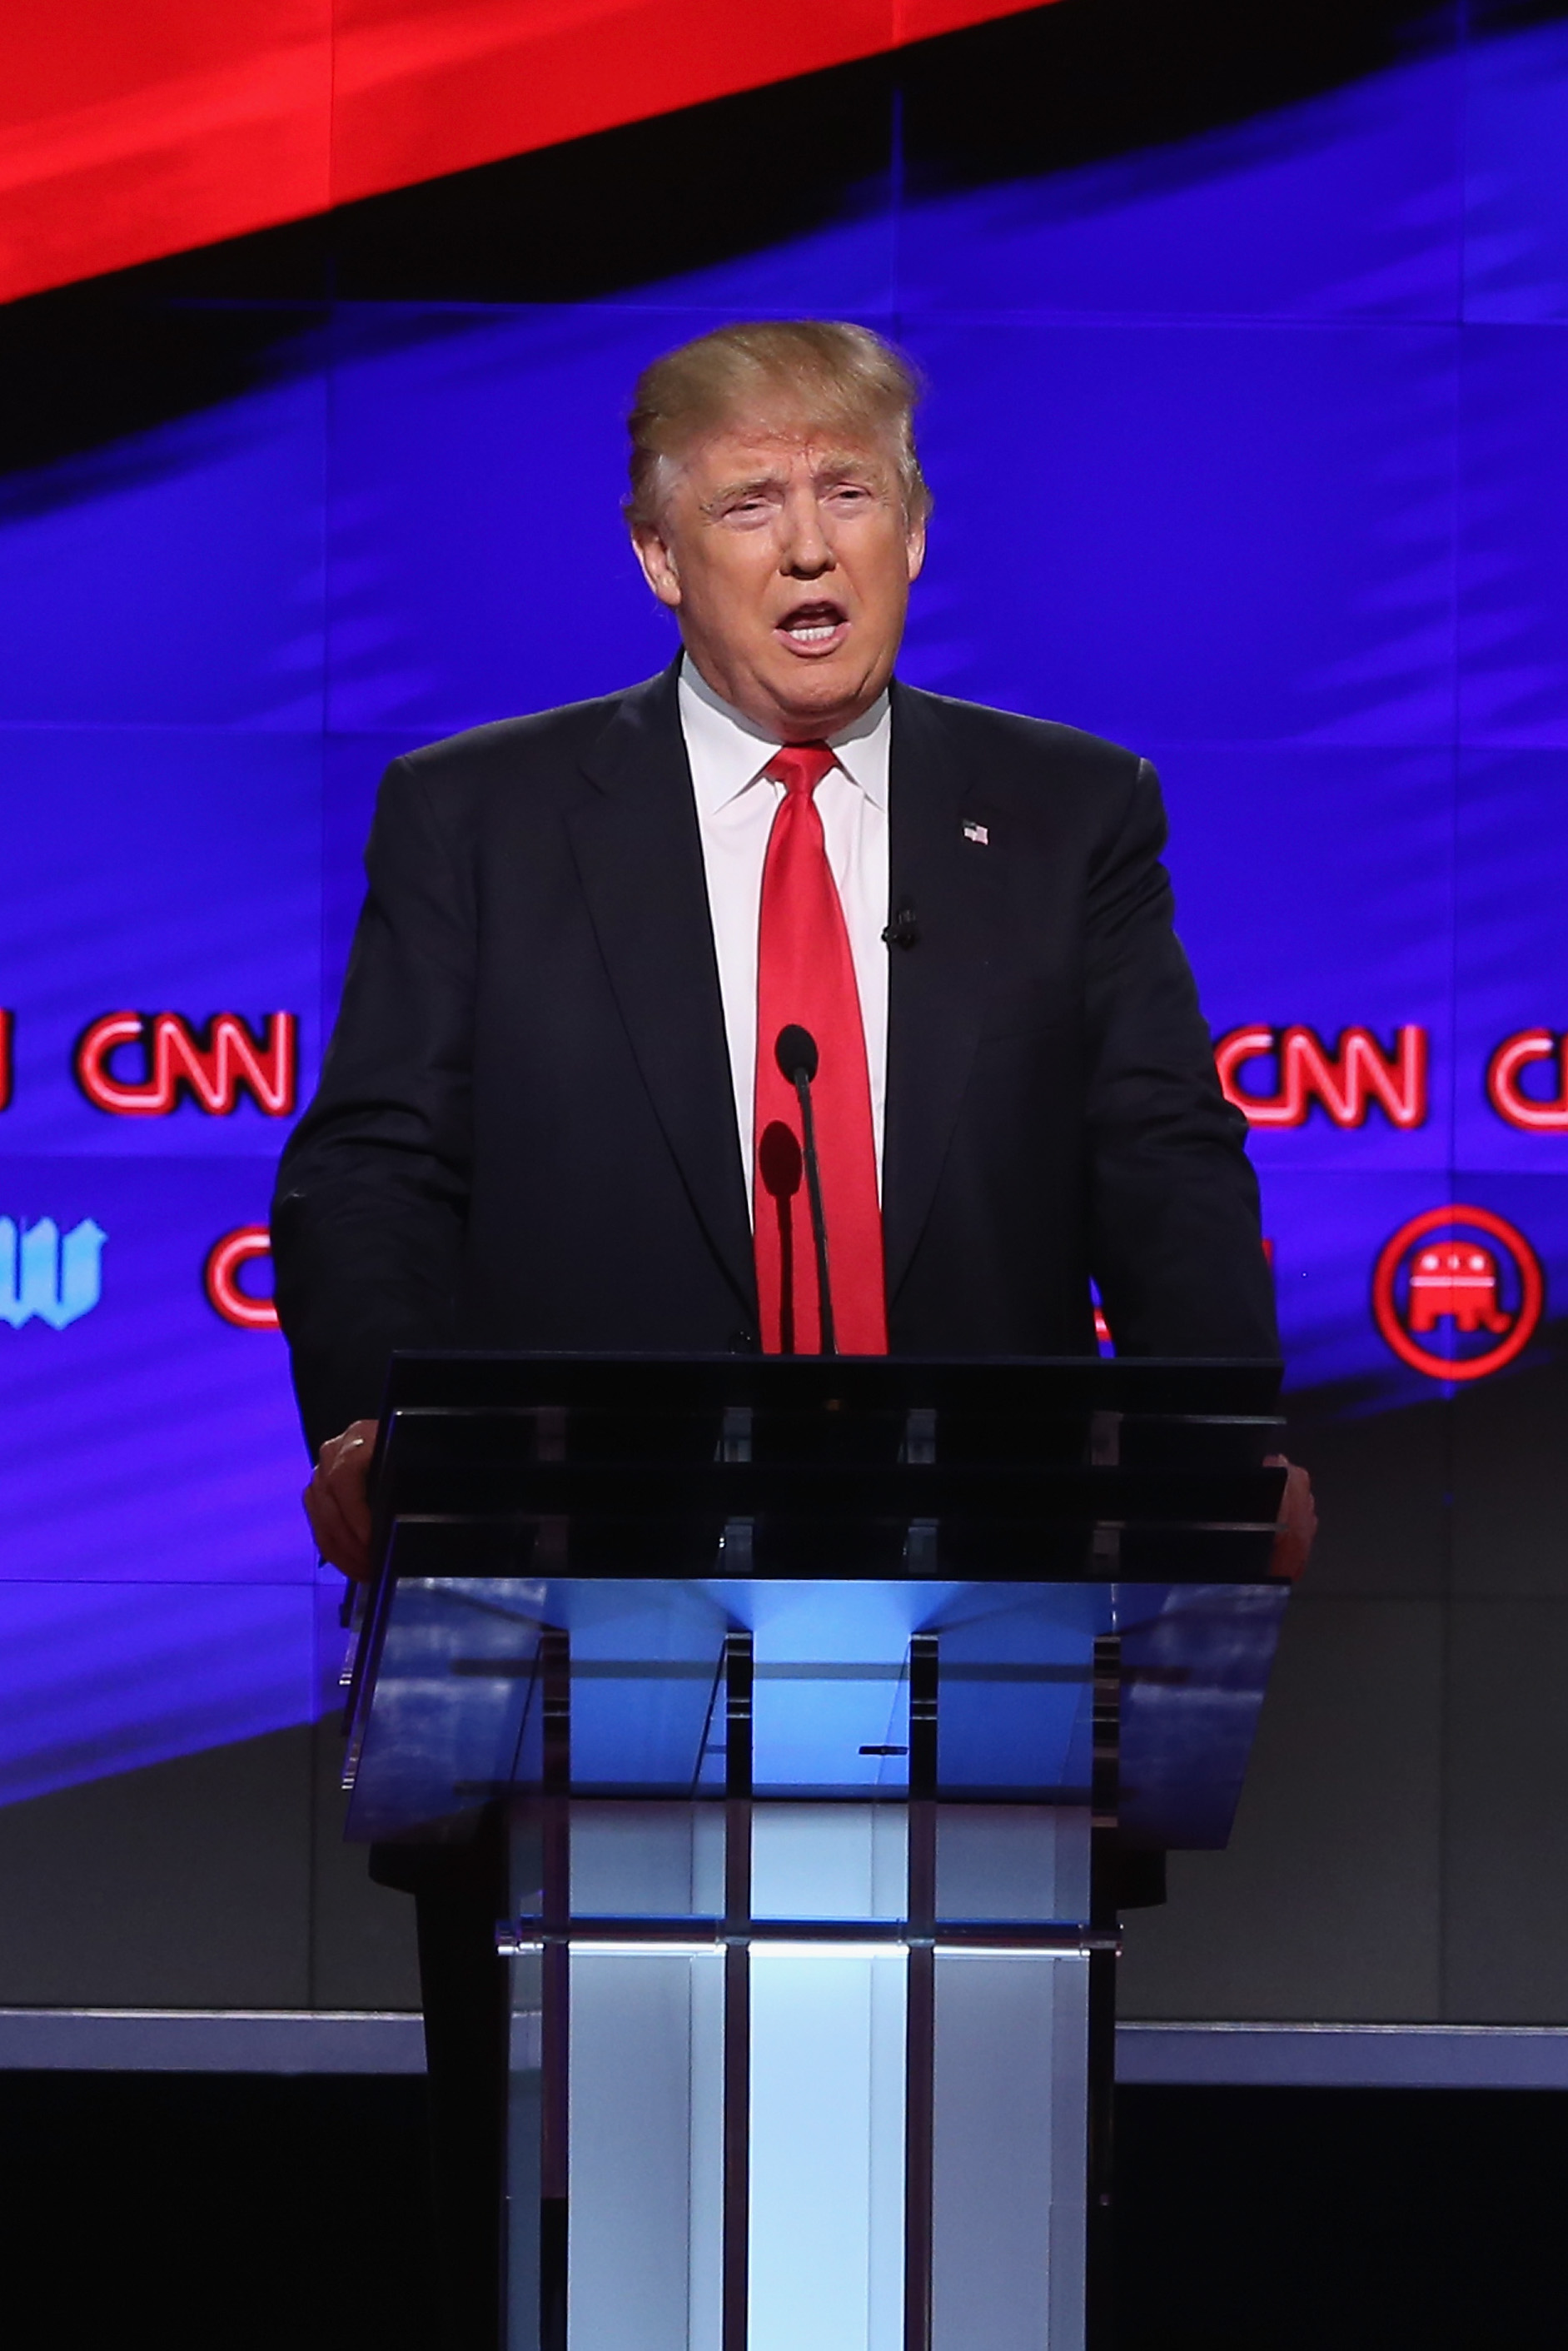 Donald Trump  during the CNN, Salem Media Group, The Washington Times Republican Presidential Primary Debate on the campus of the University of Miami on March 10, 2016 in Coral Gables, Florida.  (Joe Raedle--Getty Images)